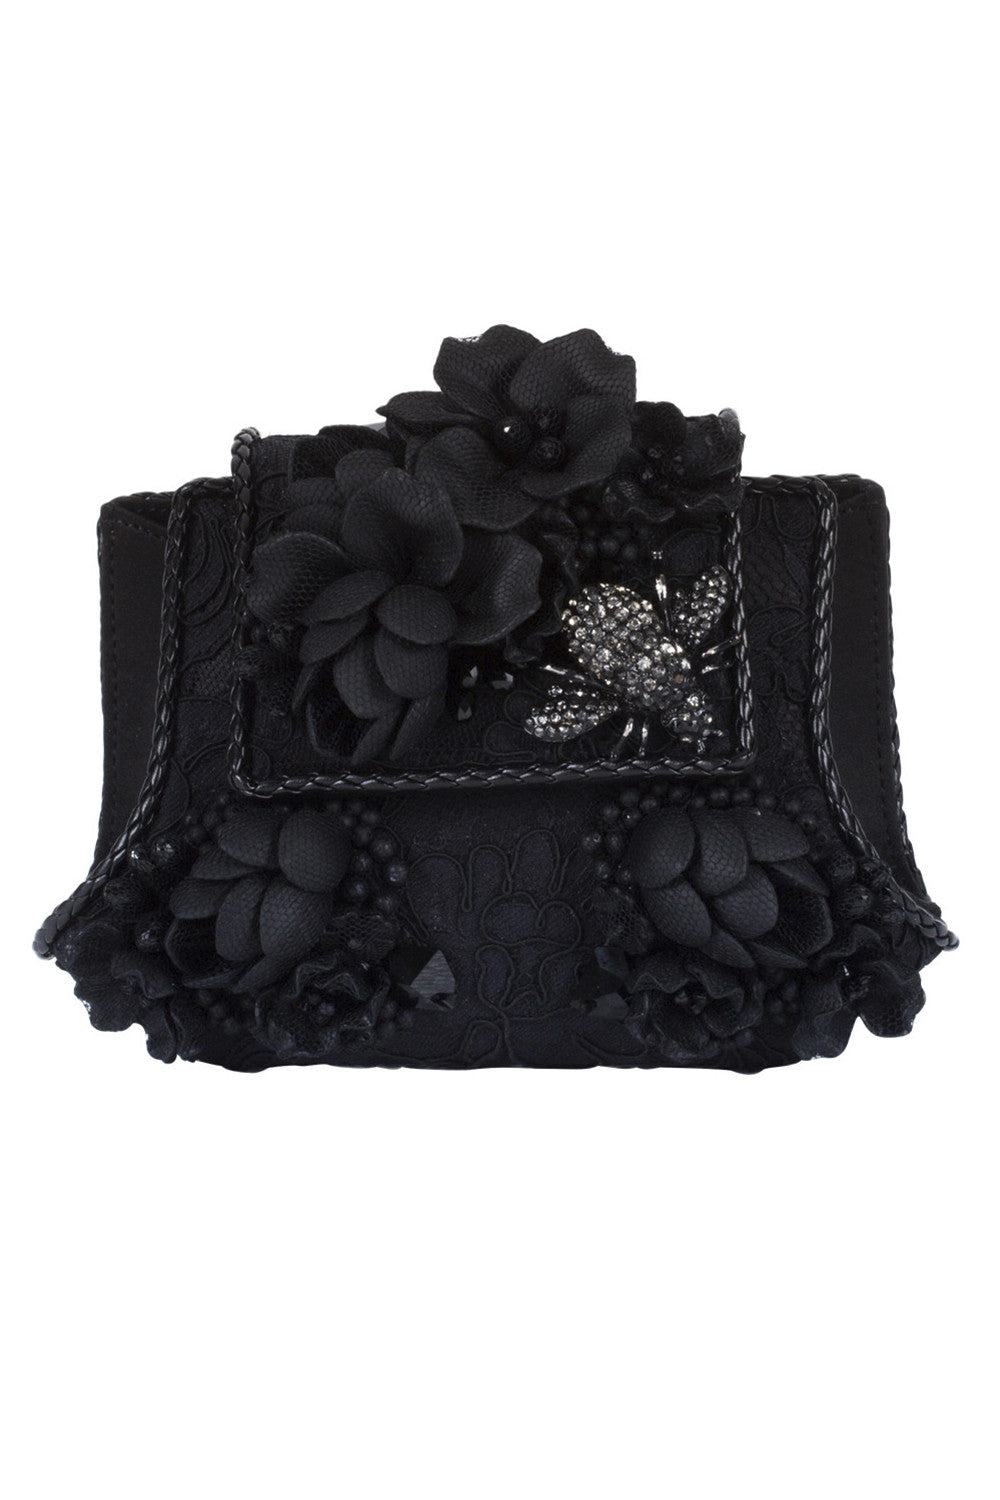 EXUS Clutch in Black